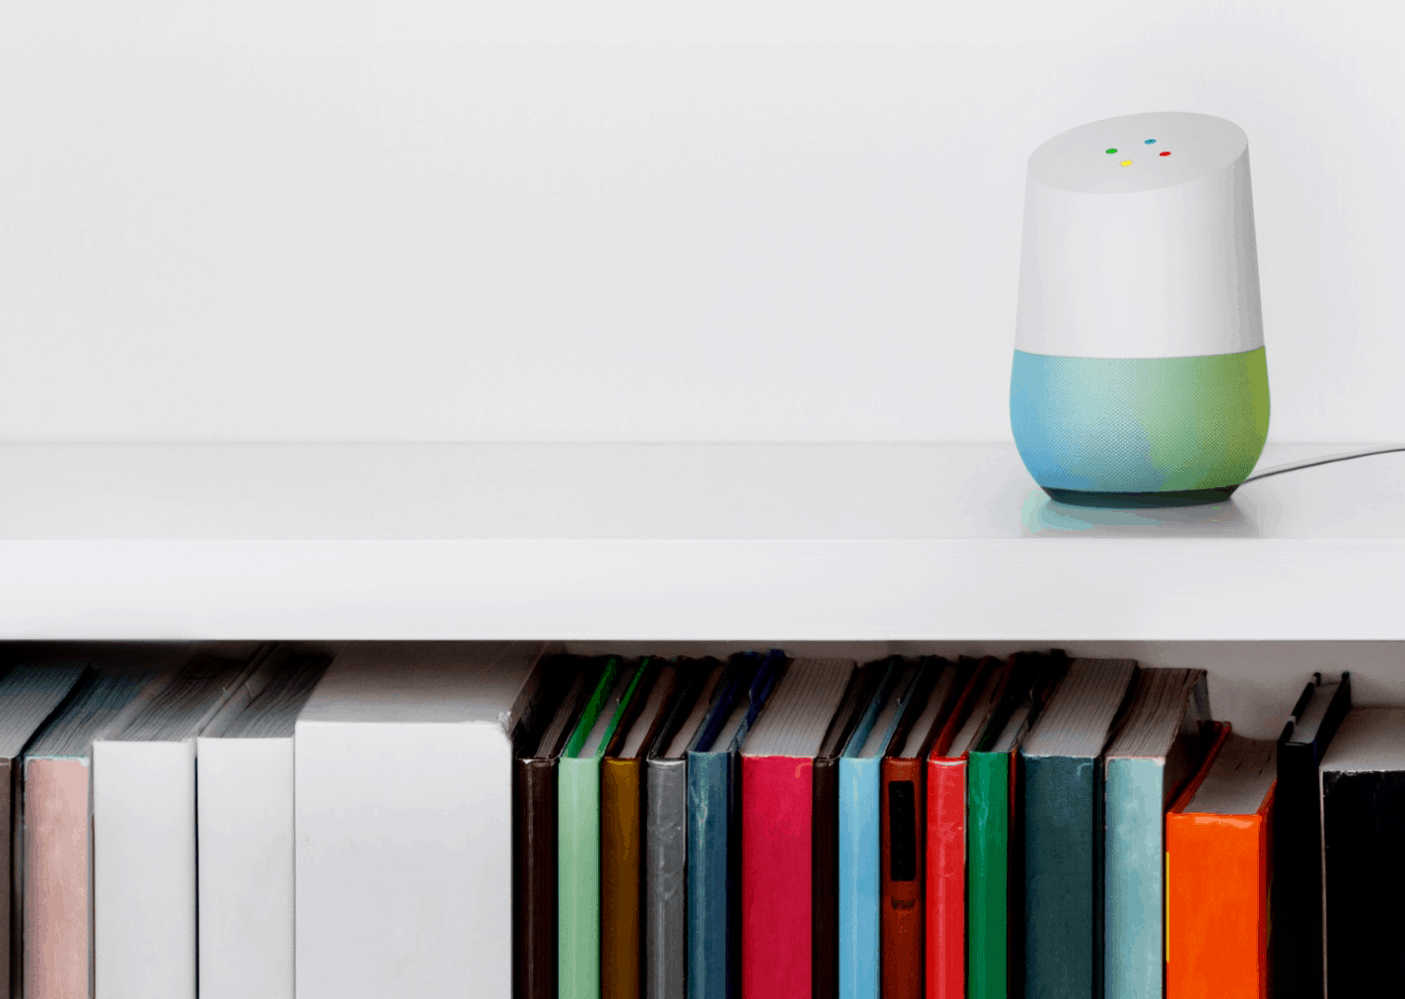 Google Assistant will also power Google Home.